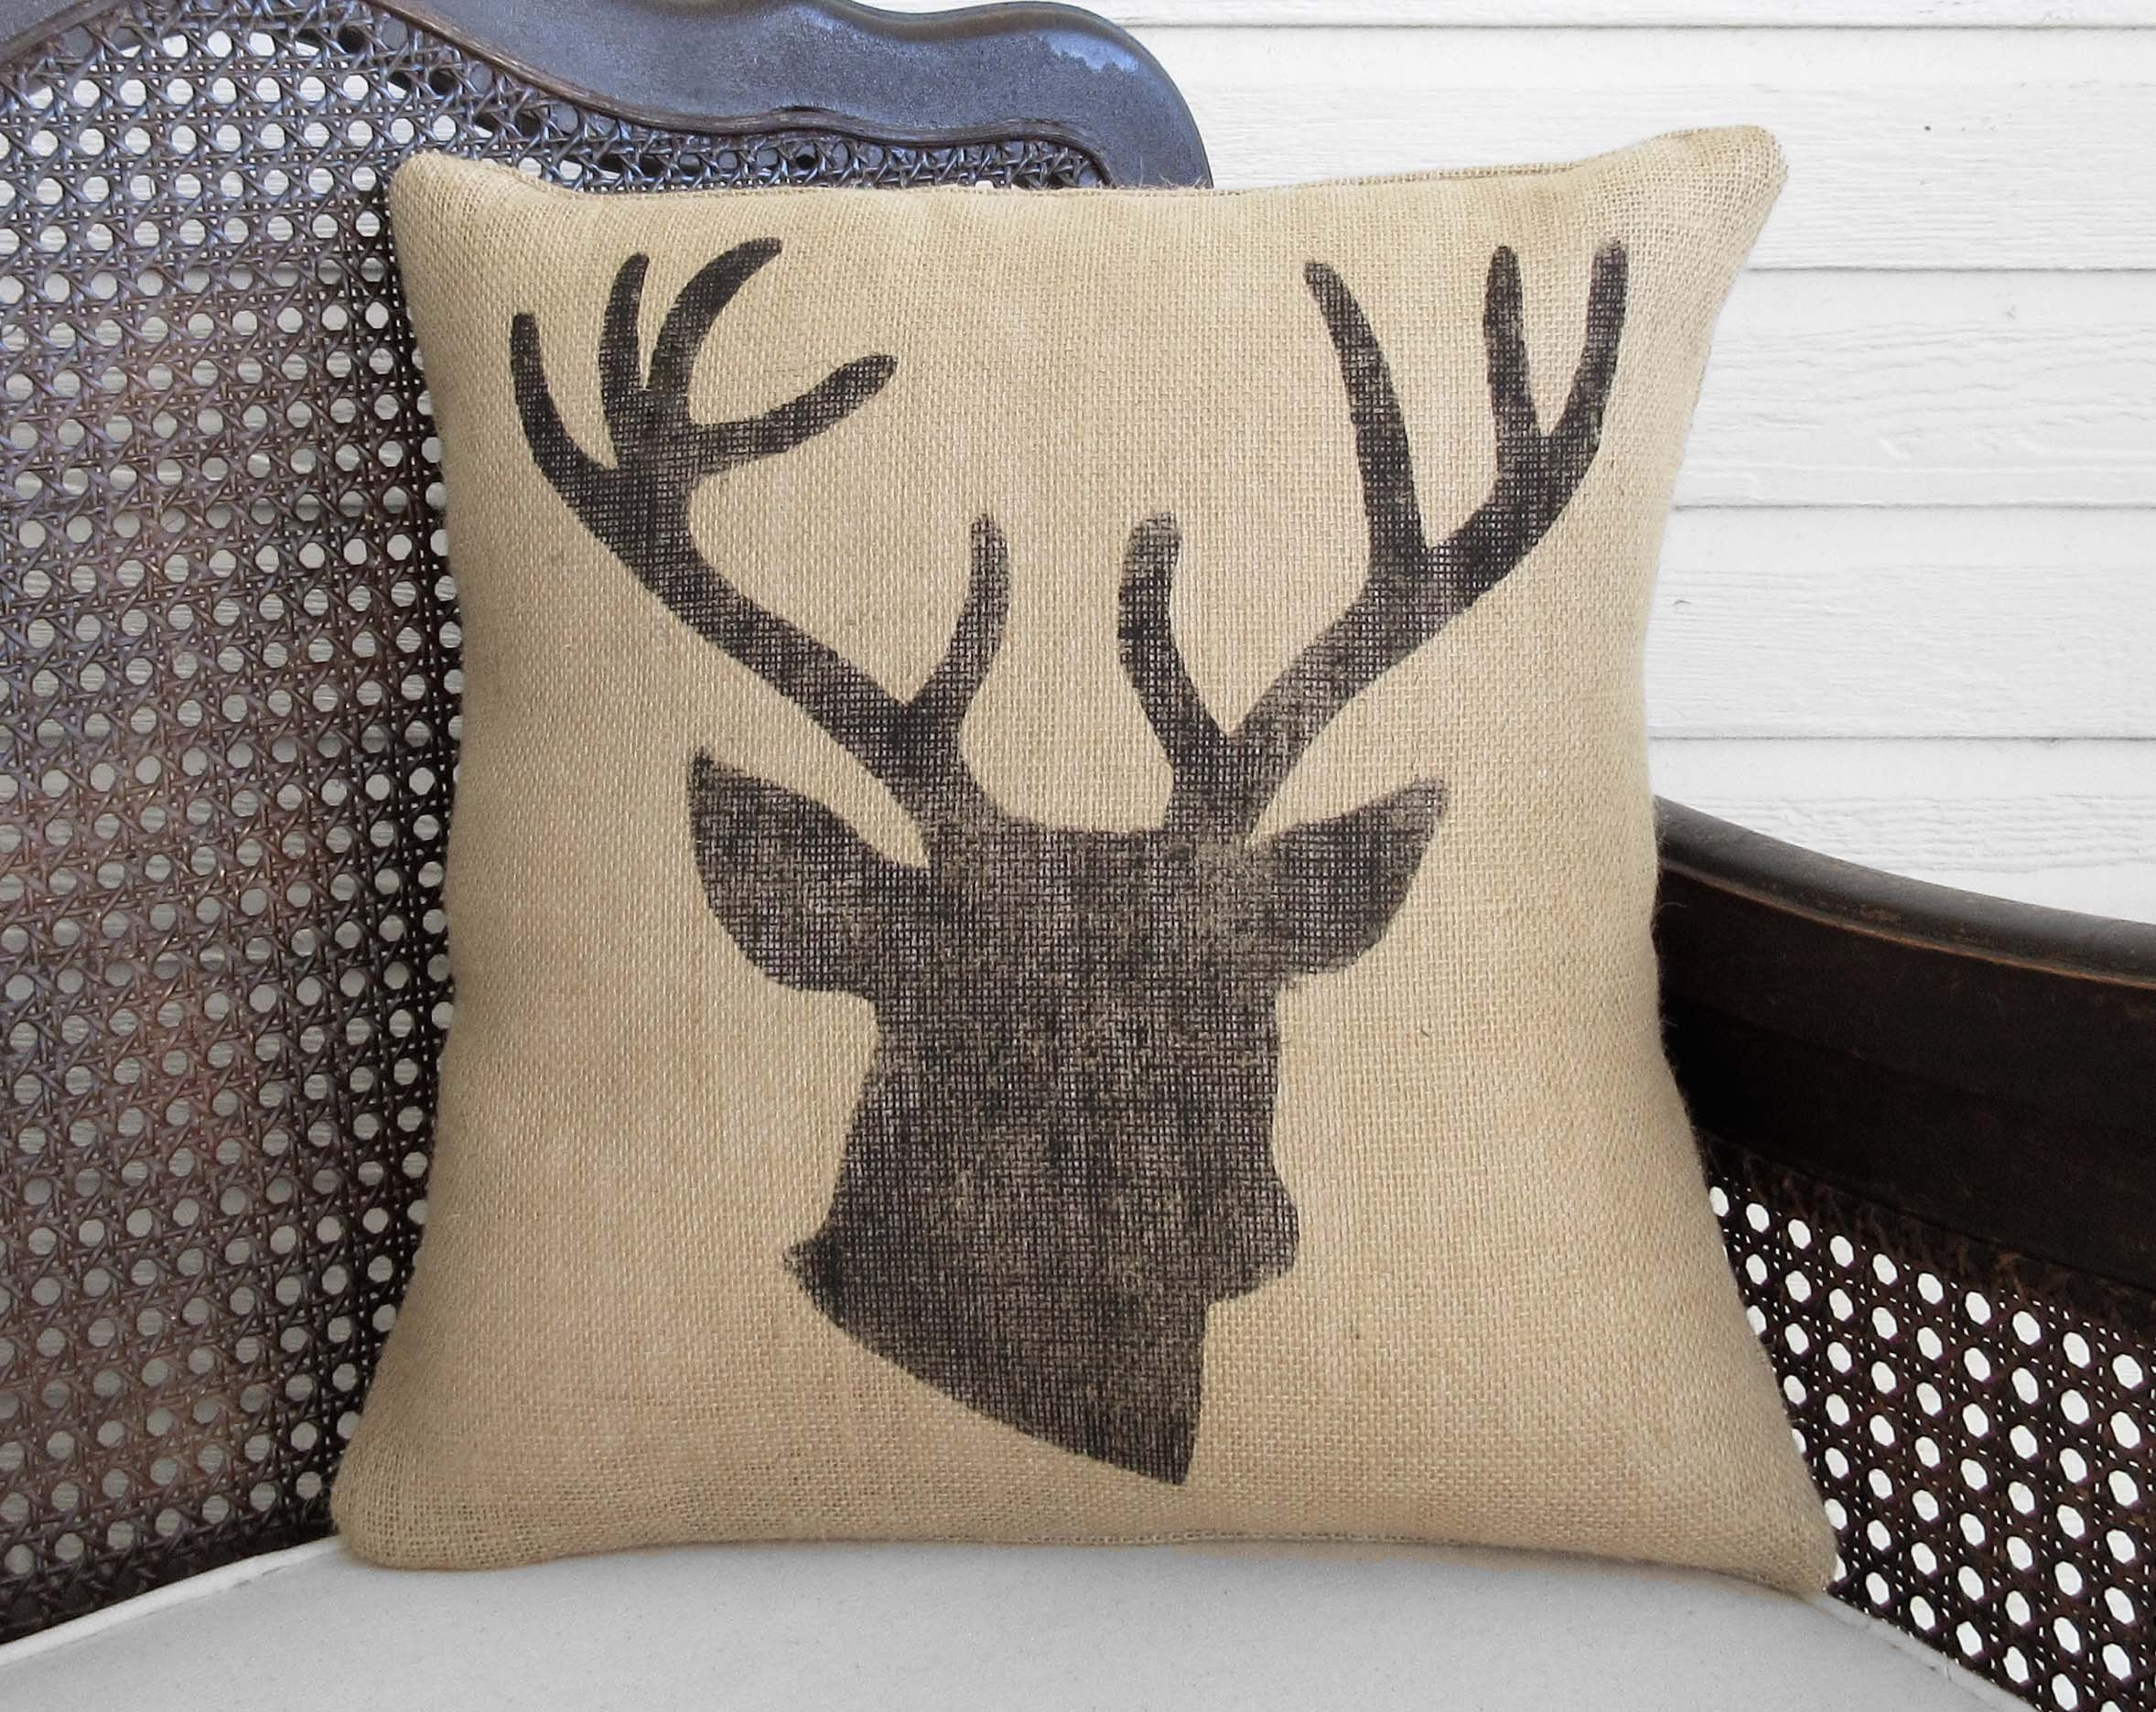 hooked ncu michaelian throw home c pillows pillow billy petit needlepoint decorative deer goat point